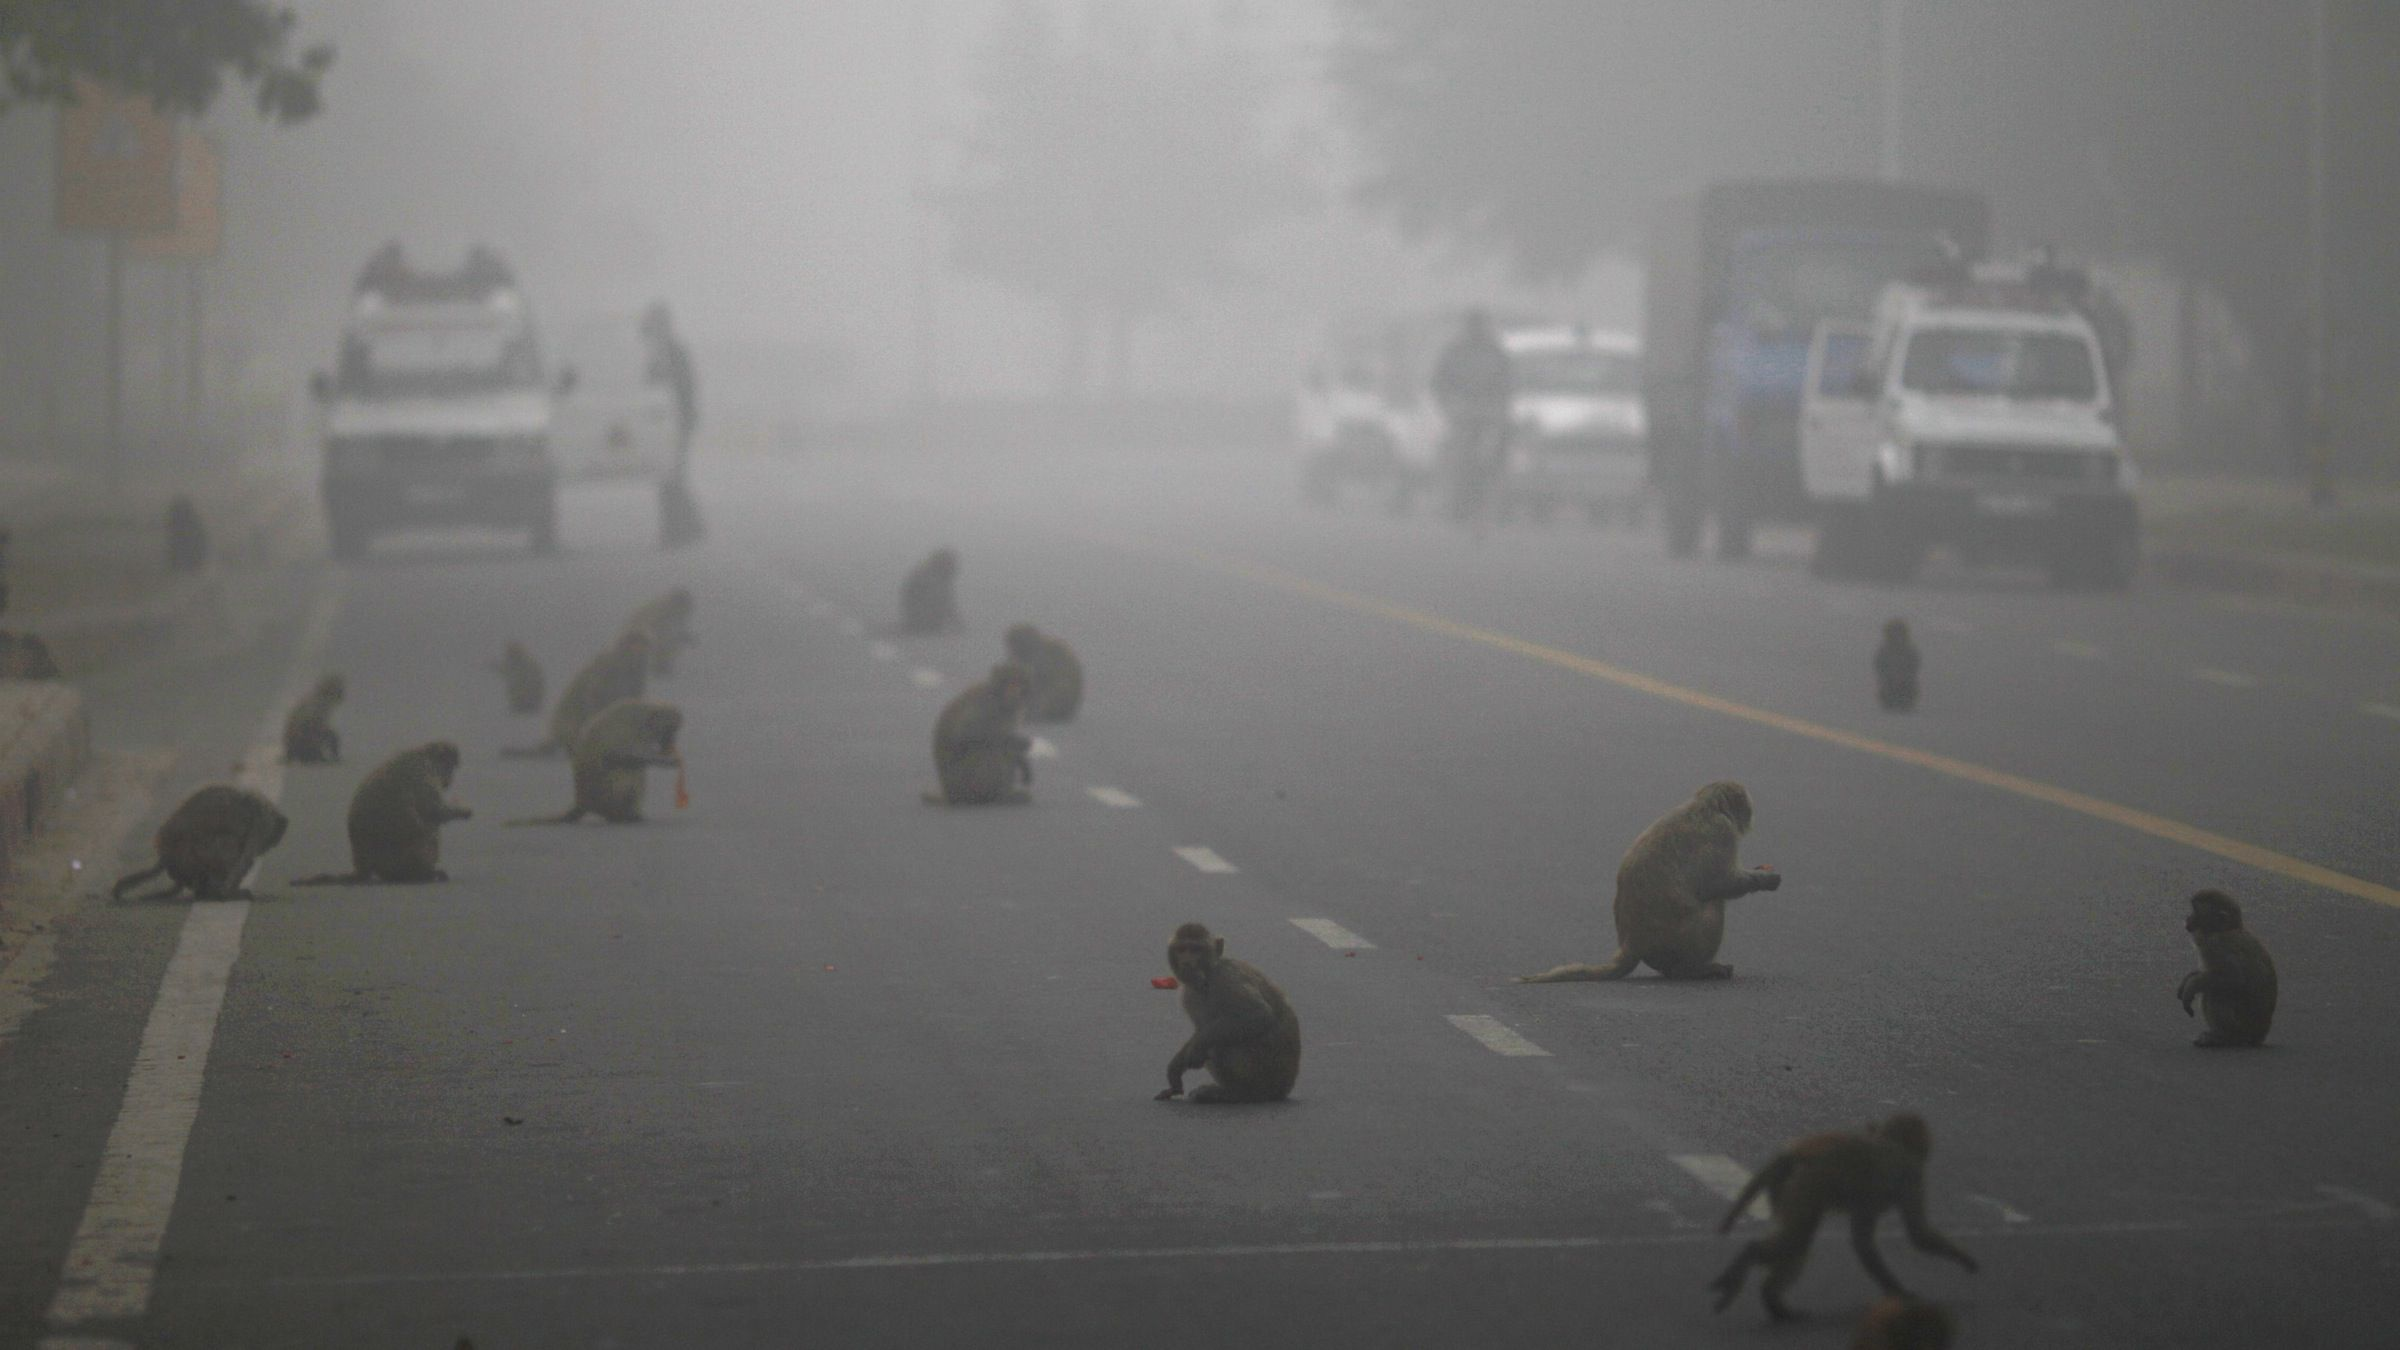 Monkeys help themselves to fruits handed out by devout Hindus early on a foggy morning in New Delhi, India, Tuesday, Jan. 3, 2012. Tuesday being the day of the Hindu Monkey God Hanuman, fruits and other food are handed out to monkeys by devotees as an act to rid themselves of their sin. (AP Photo/Saurabh Das)